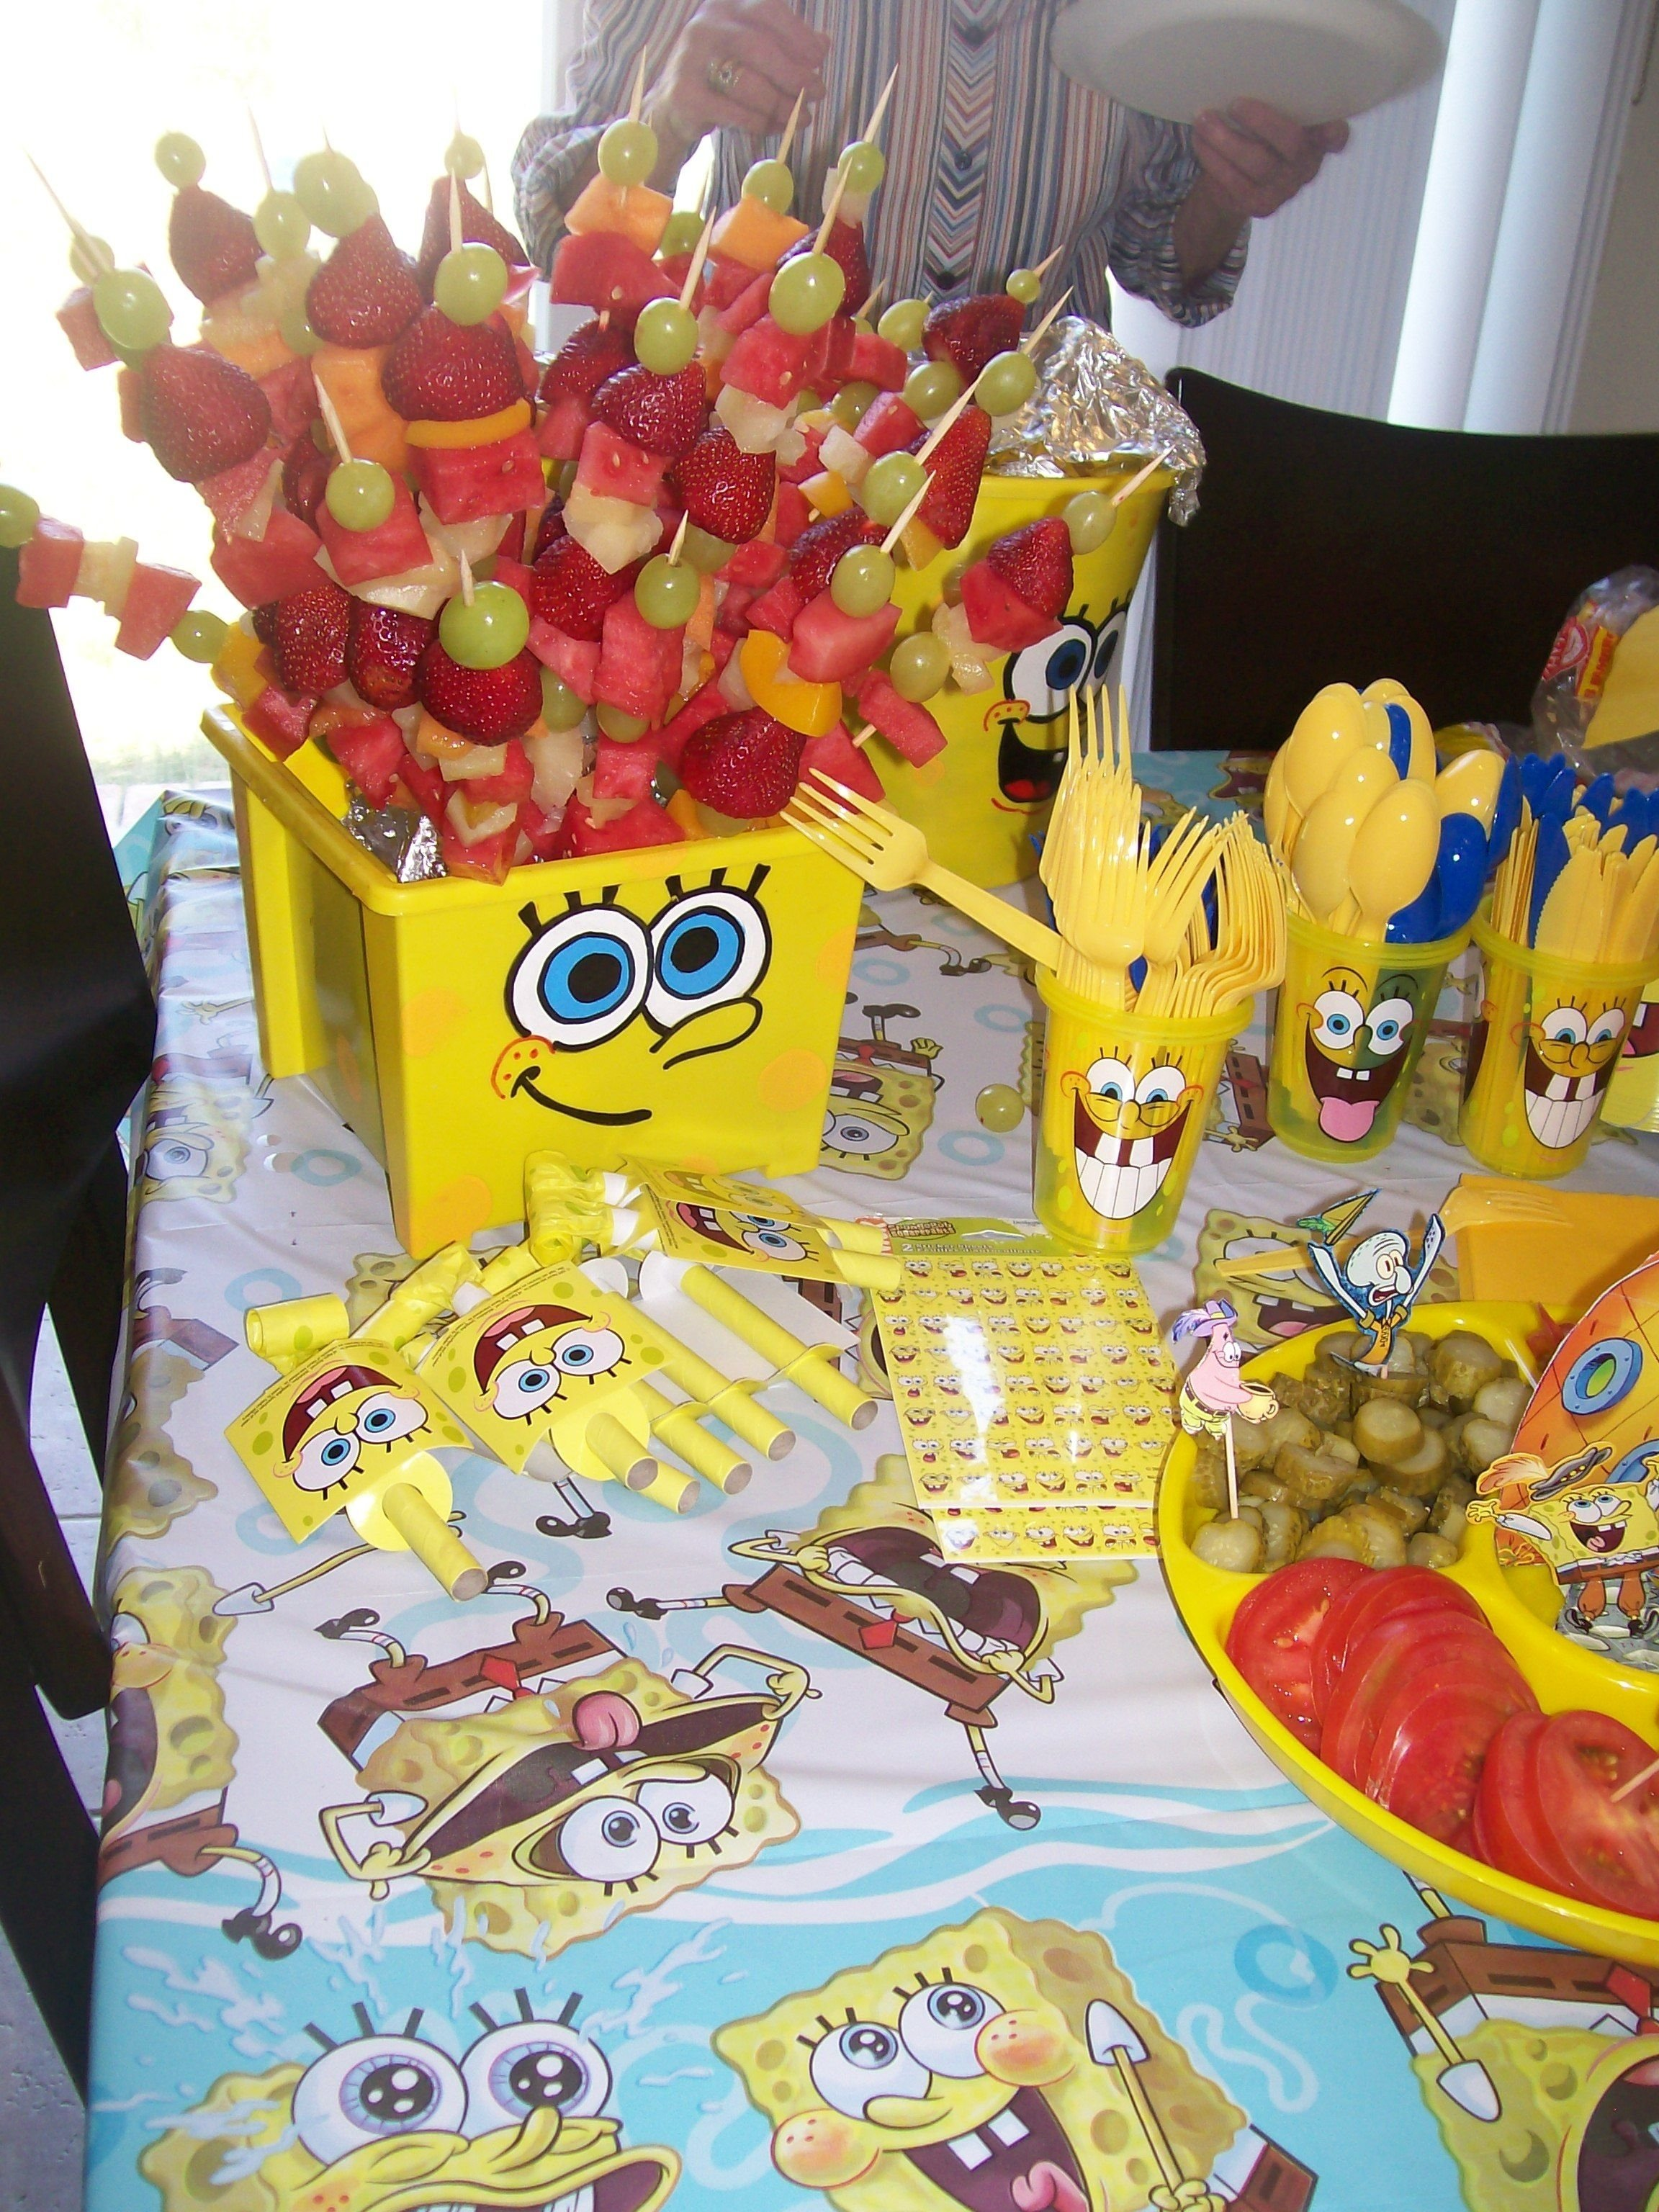 10 Trendy Spongebob Birthday Party Food Ideas sponge bob buckets and party decorations other buckes can be filled 2020